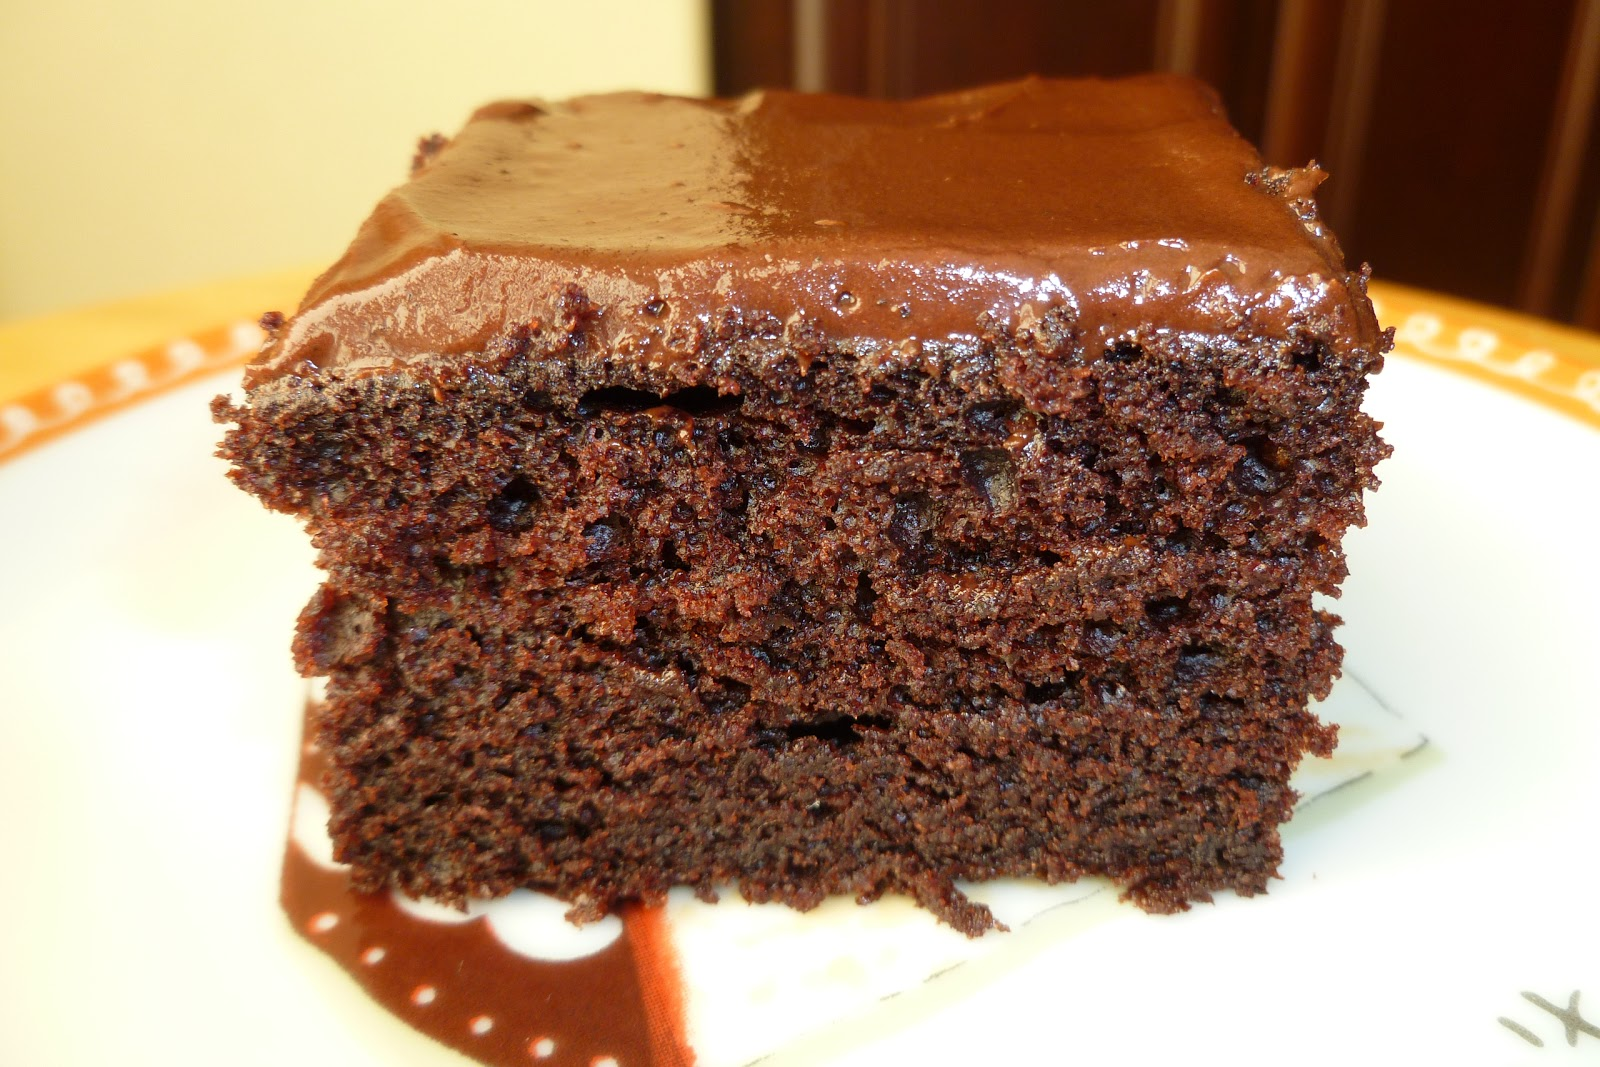 Costco Chocolate Fudge Cake Recipe